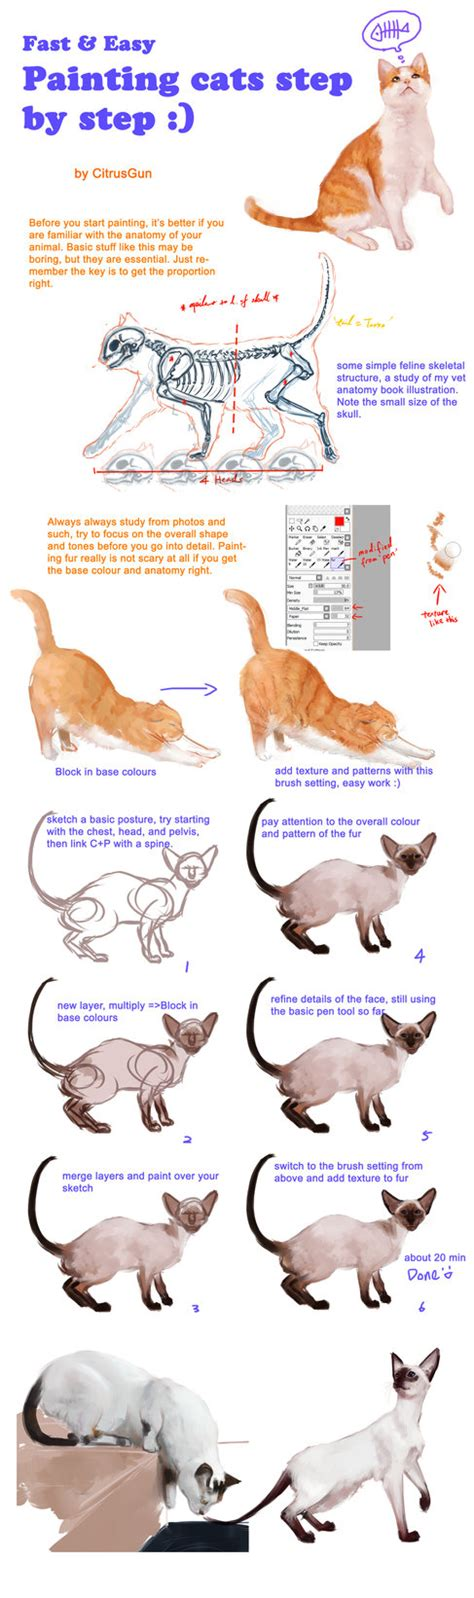 cat tutorial painting cats tutorial by citrusgun on deviantart